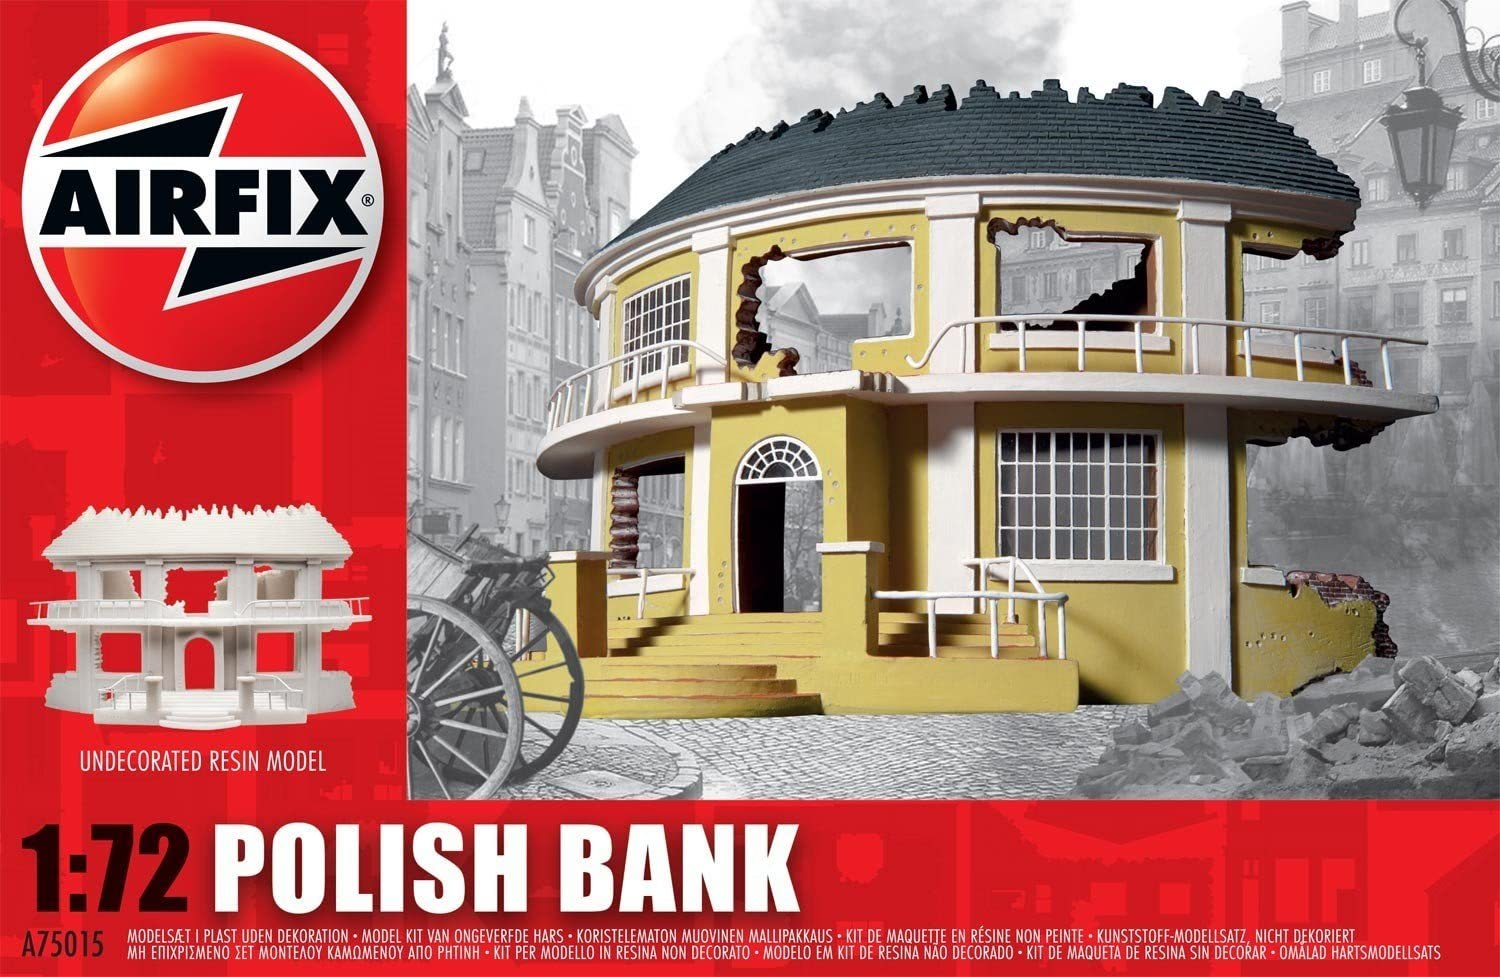 Airfix A75015 1//72 Resin Model of a Polish Bank in Ruins